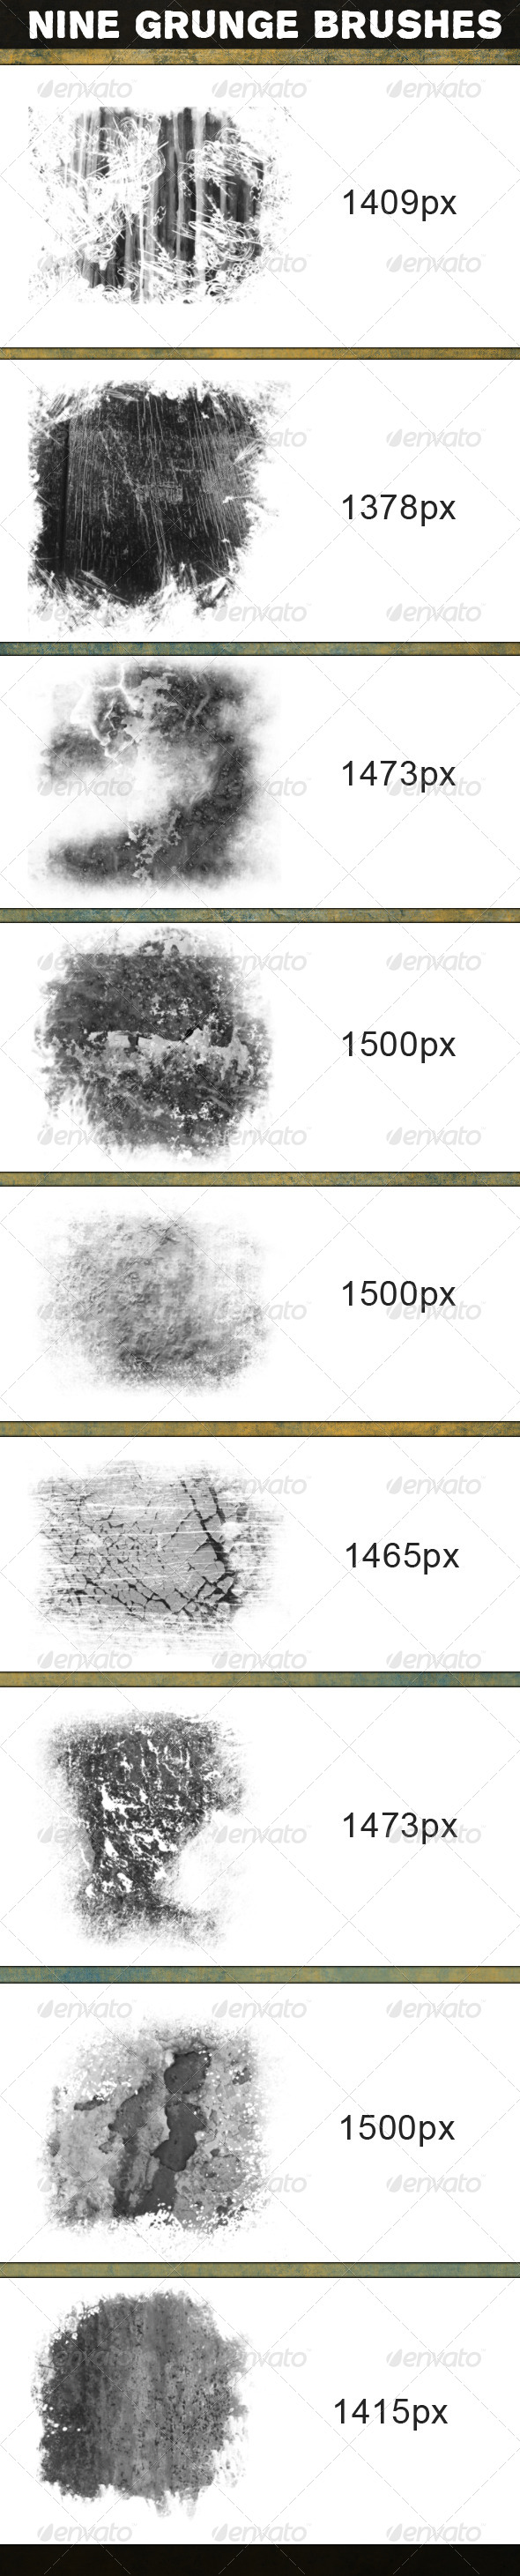 GraphicRiver Nine Grunge Brushes 5838618